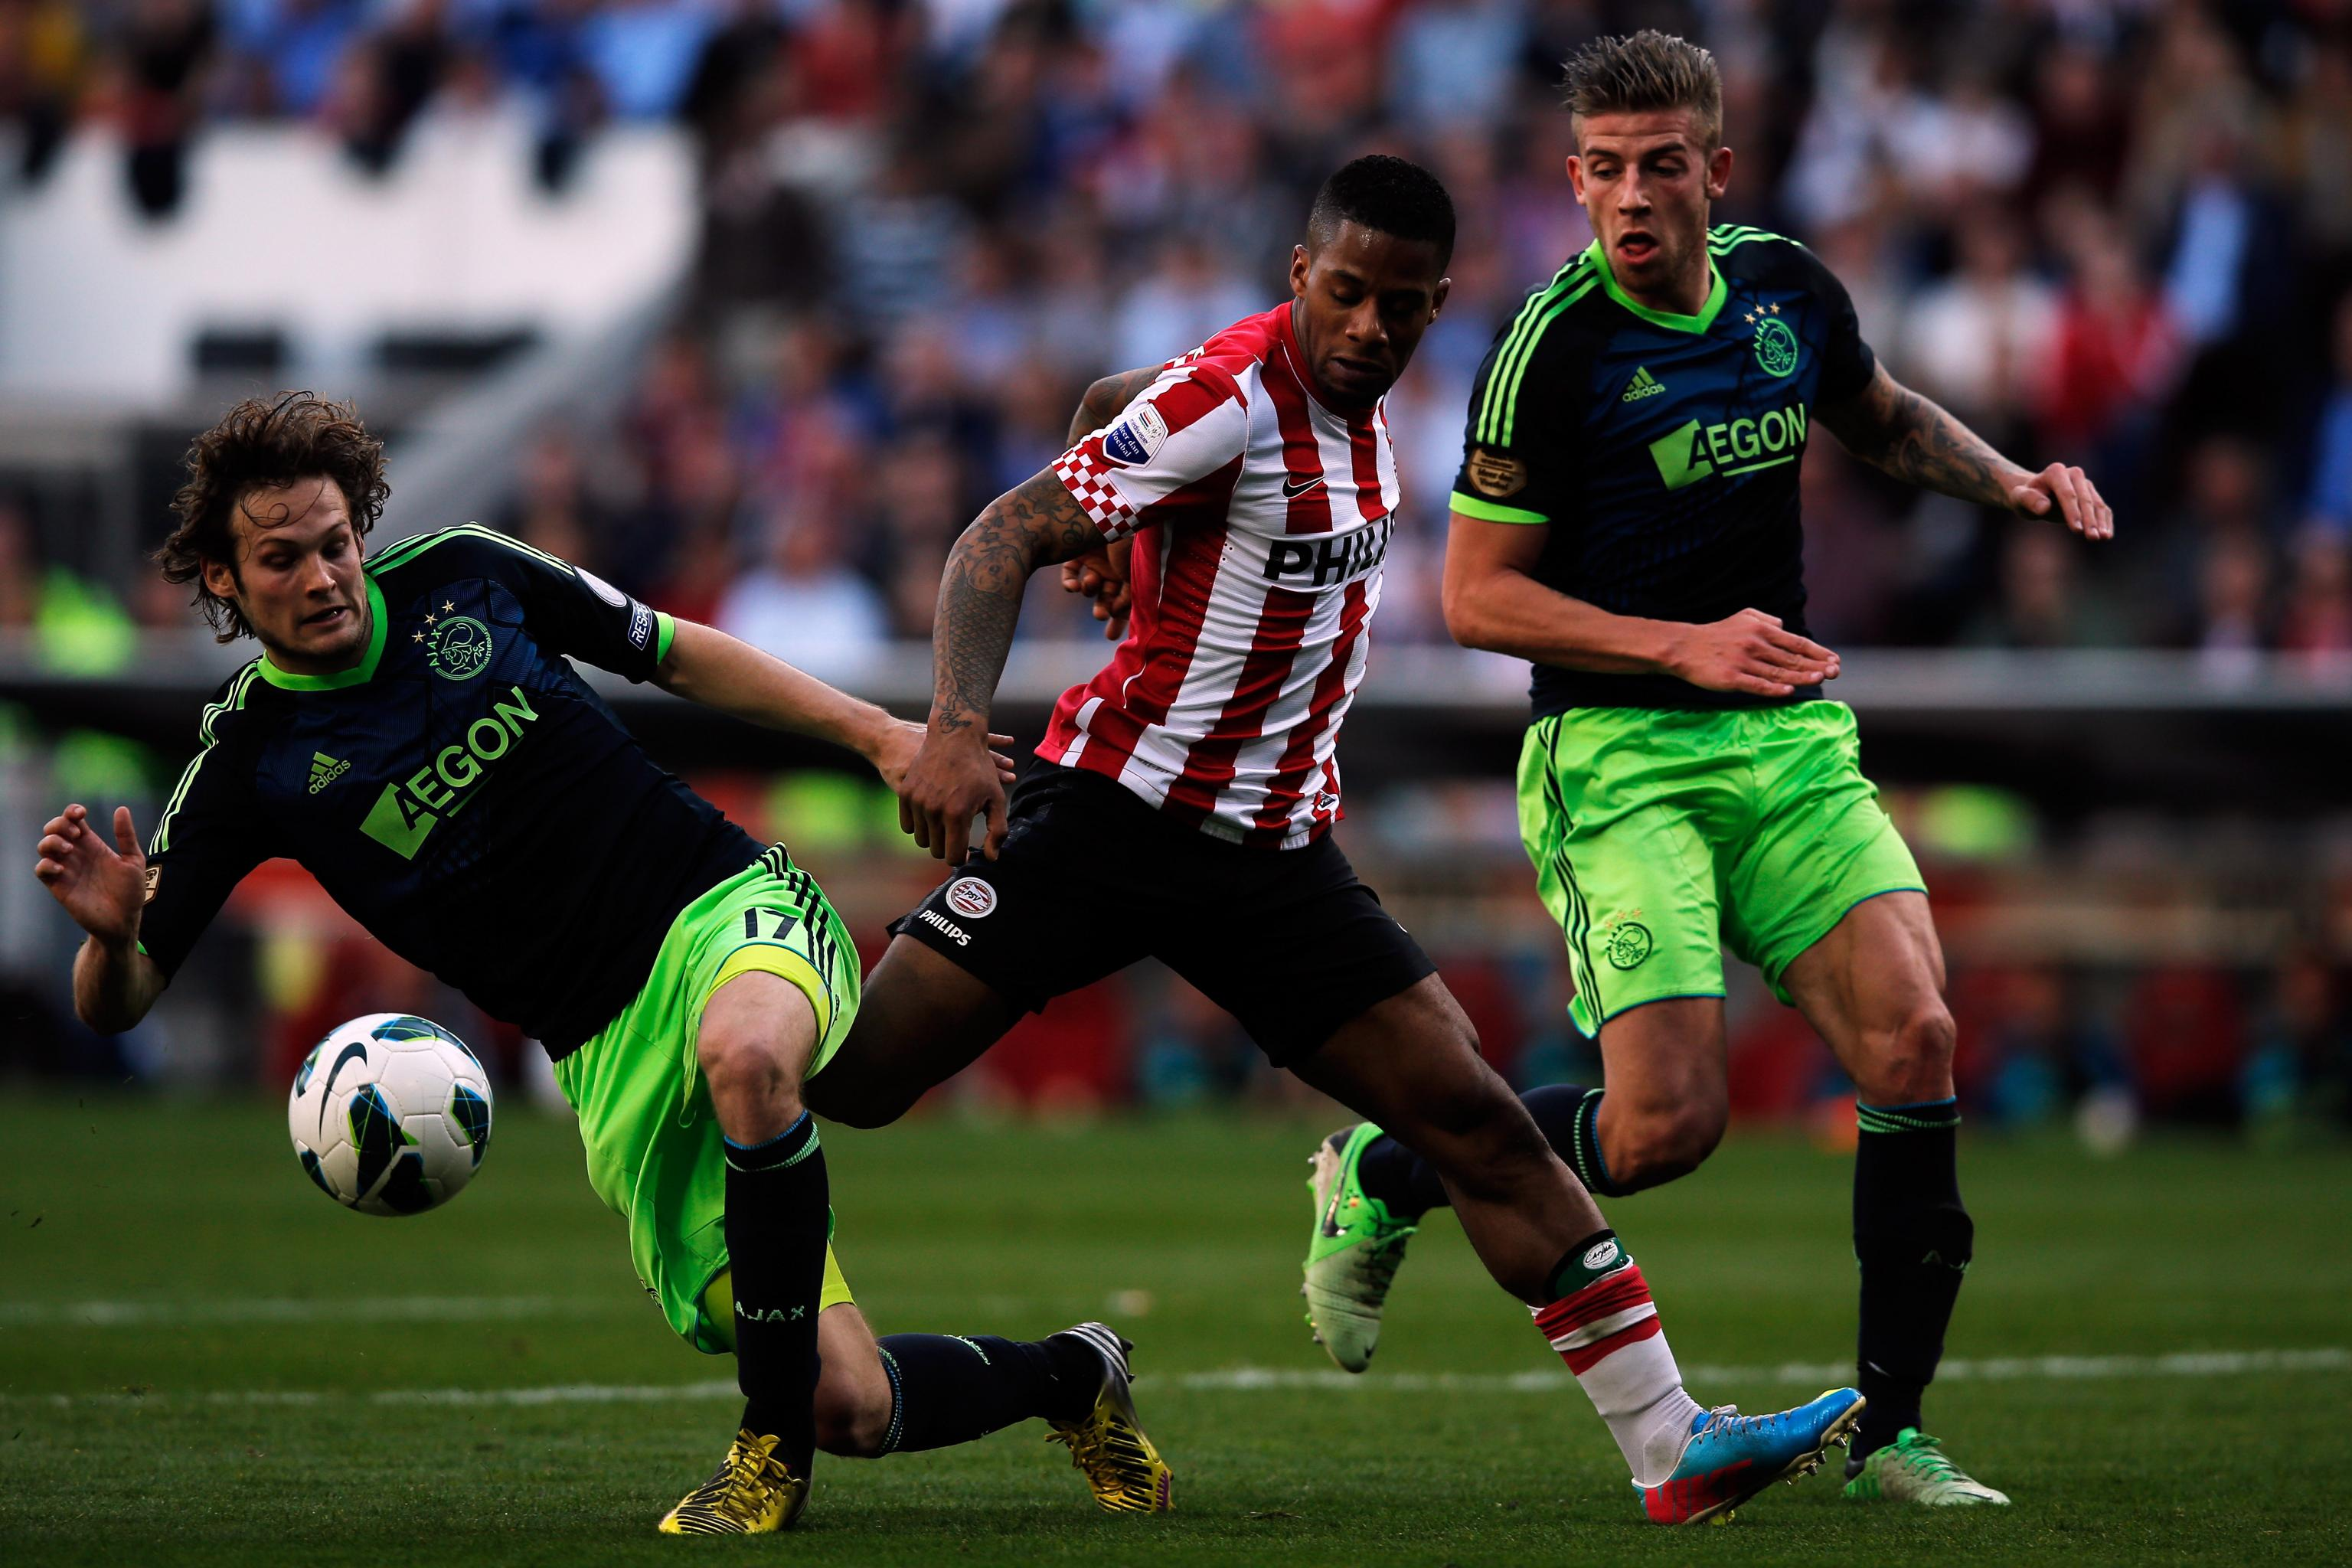 Ajax Vs Psv Eindhoven Date Time Live Stream Tv Info And Preview Bleacher Report Latest News Videos And Highlights